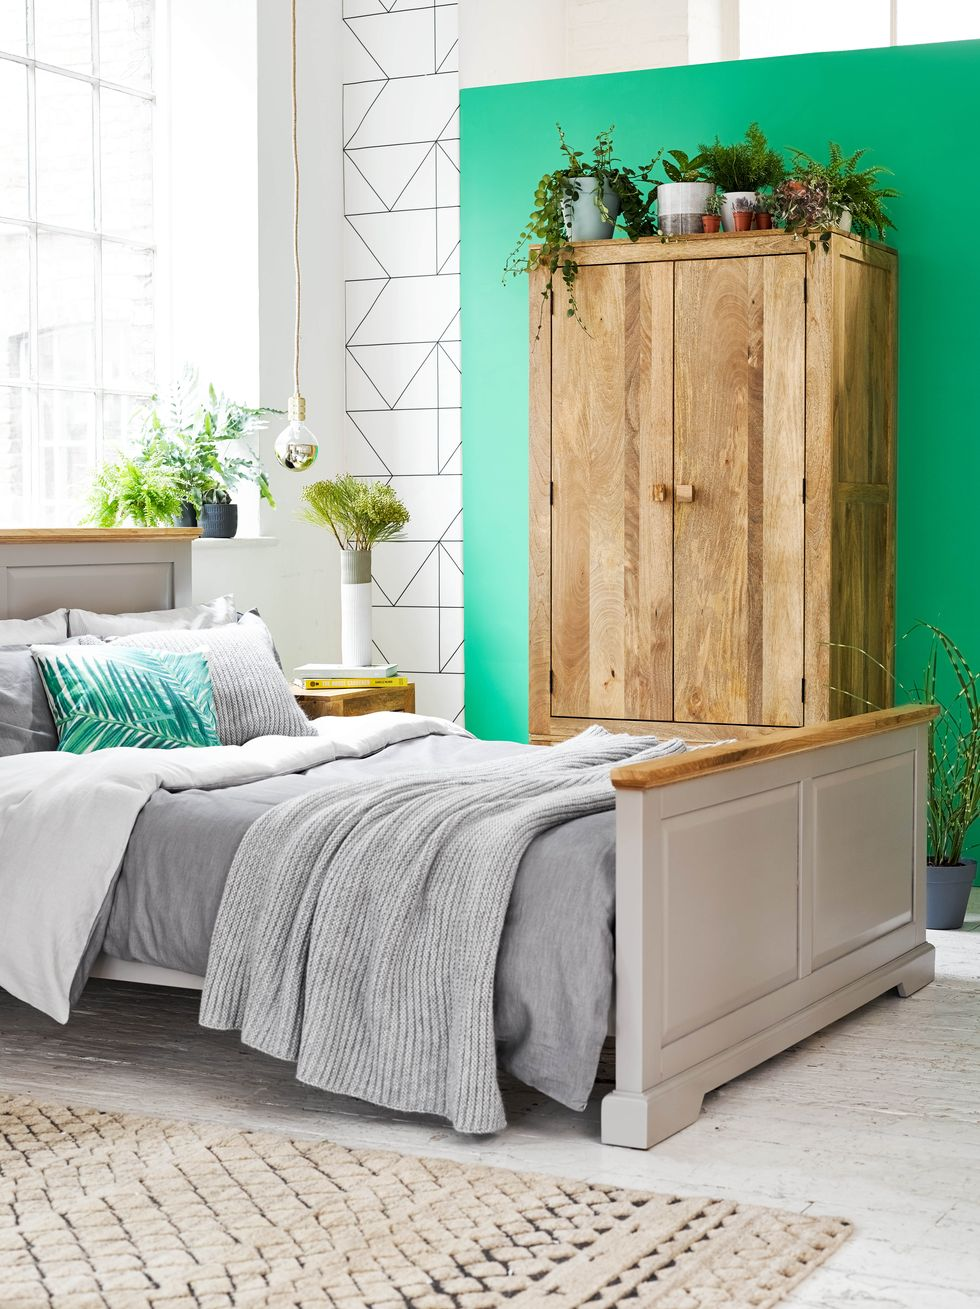 The Big Declutter Challenge: How to achieve a super-clean, organised and clutter-free bedroom